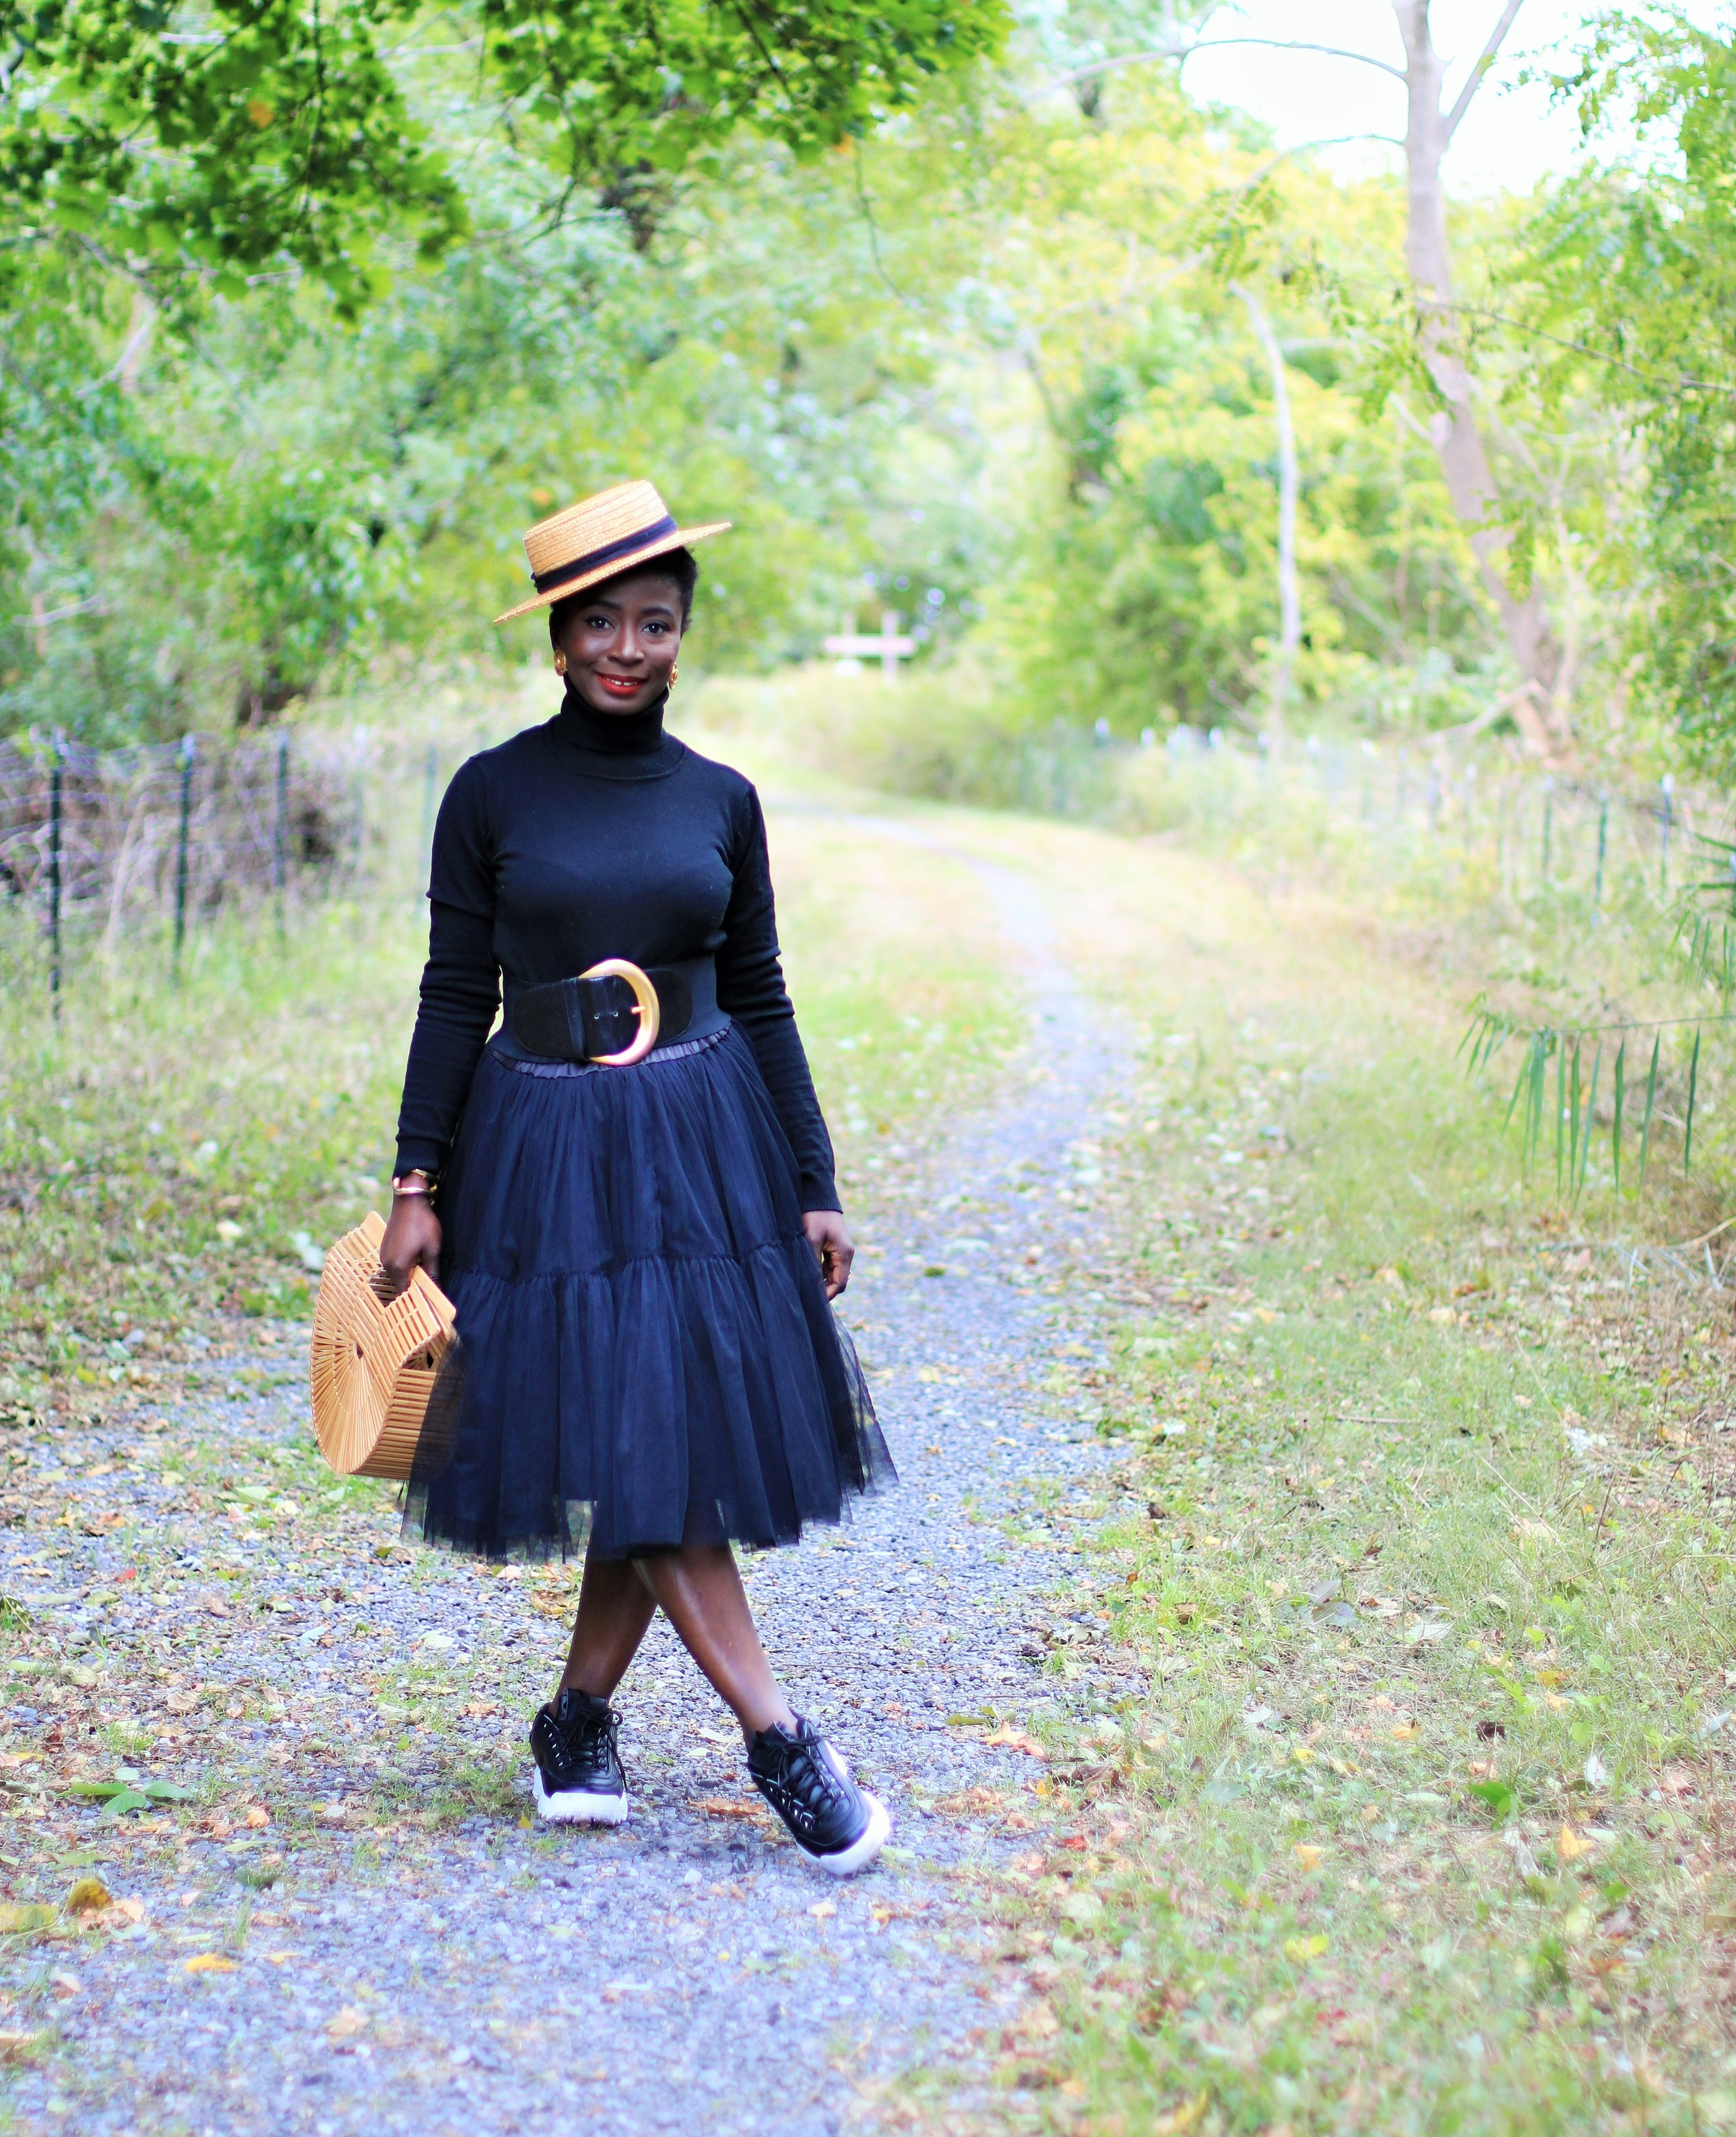 Tulle-Skirt-And-Sneakers-Outfit-Ideas